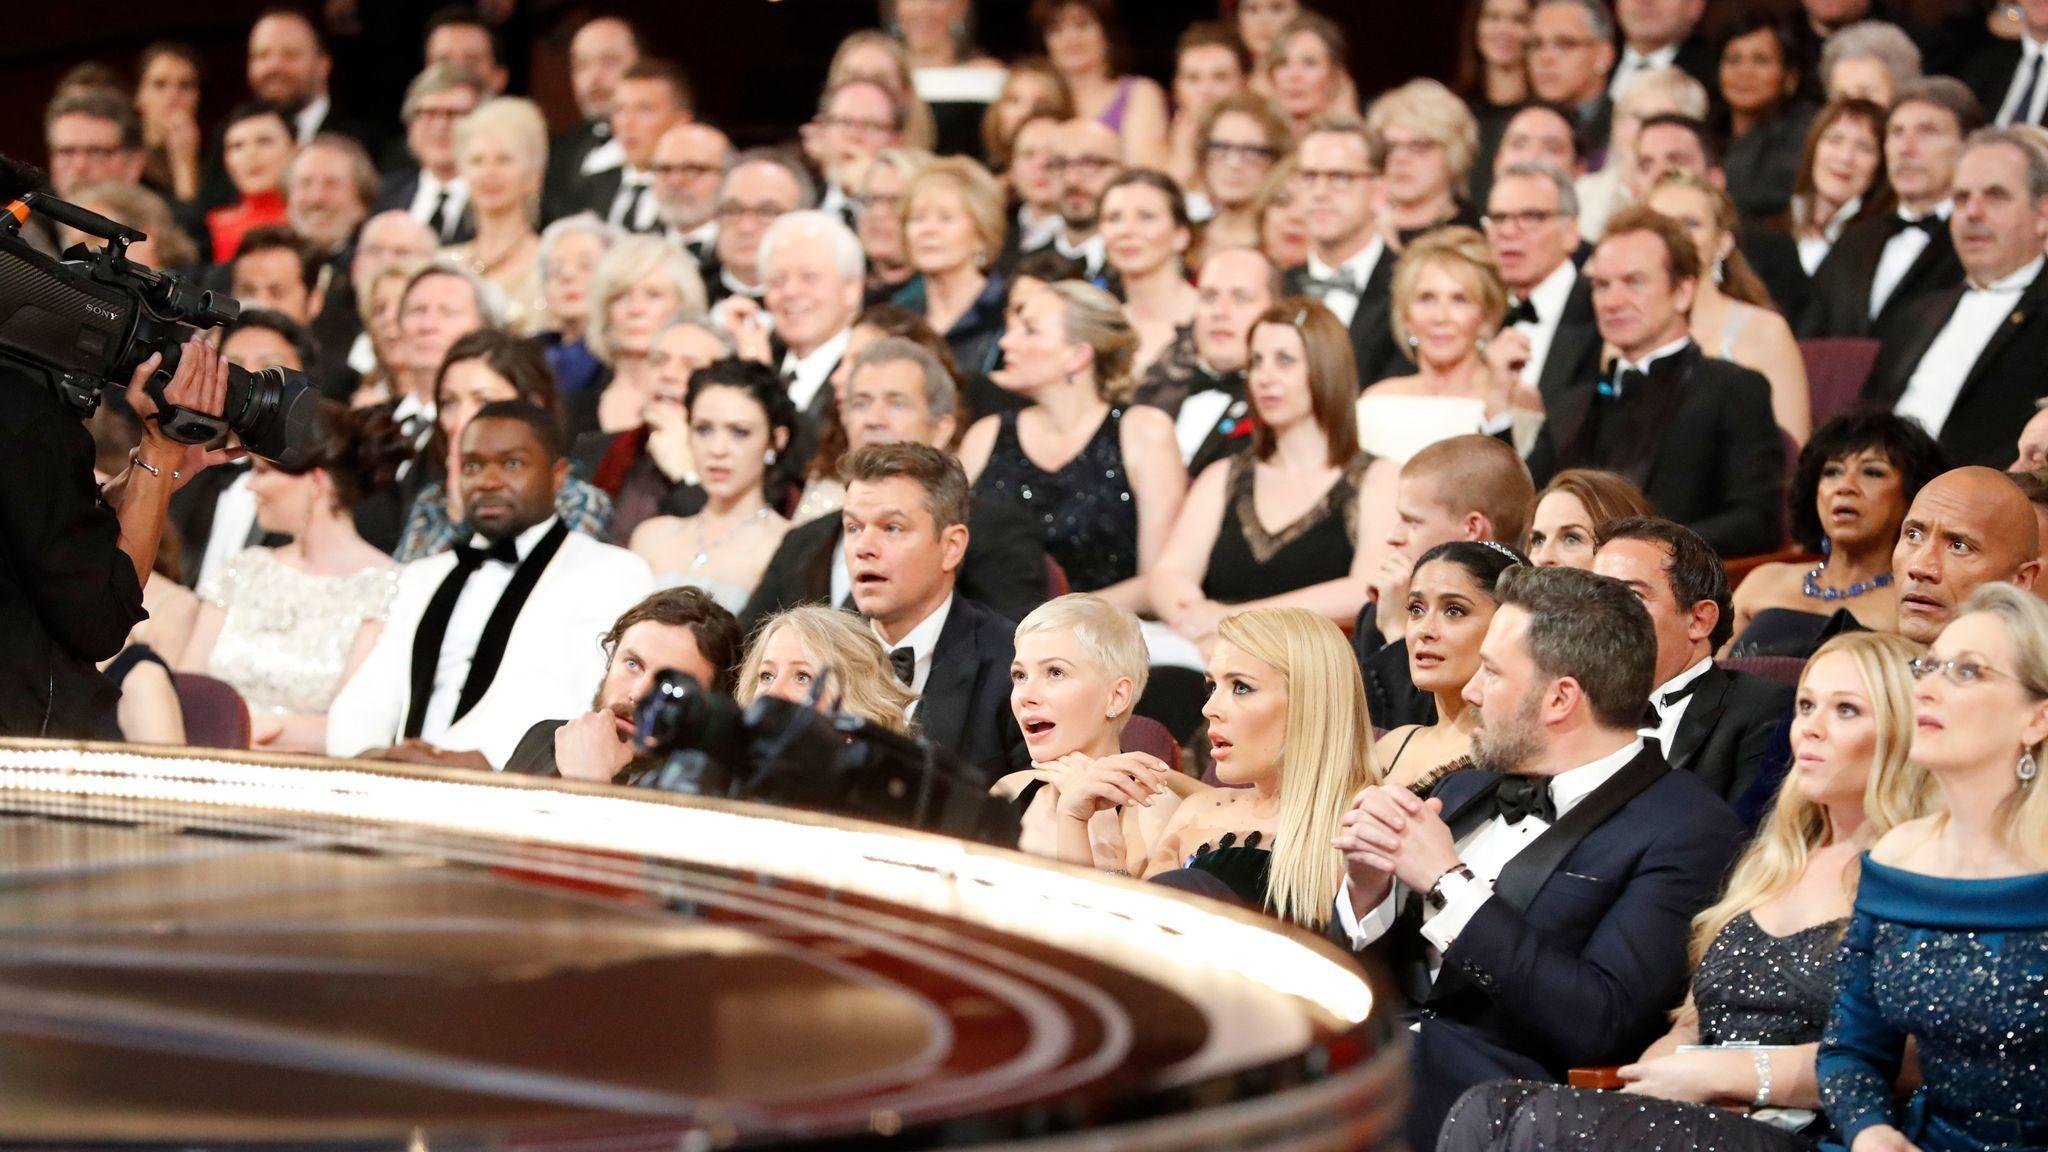 The audience reacts as Moonlight is announced as the real winner.